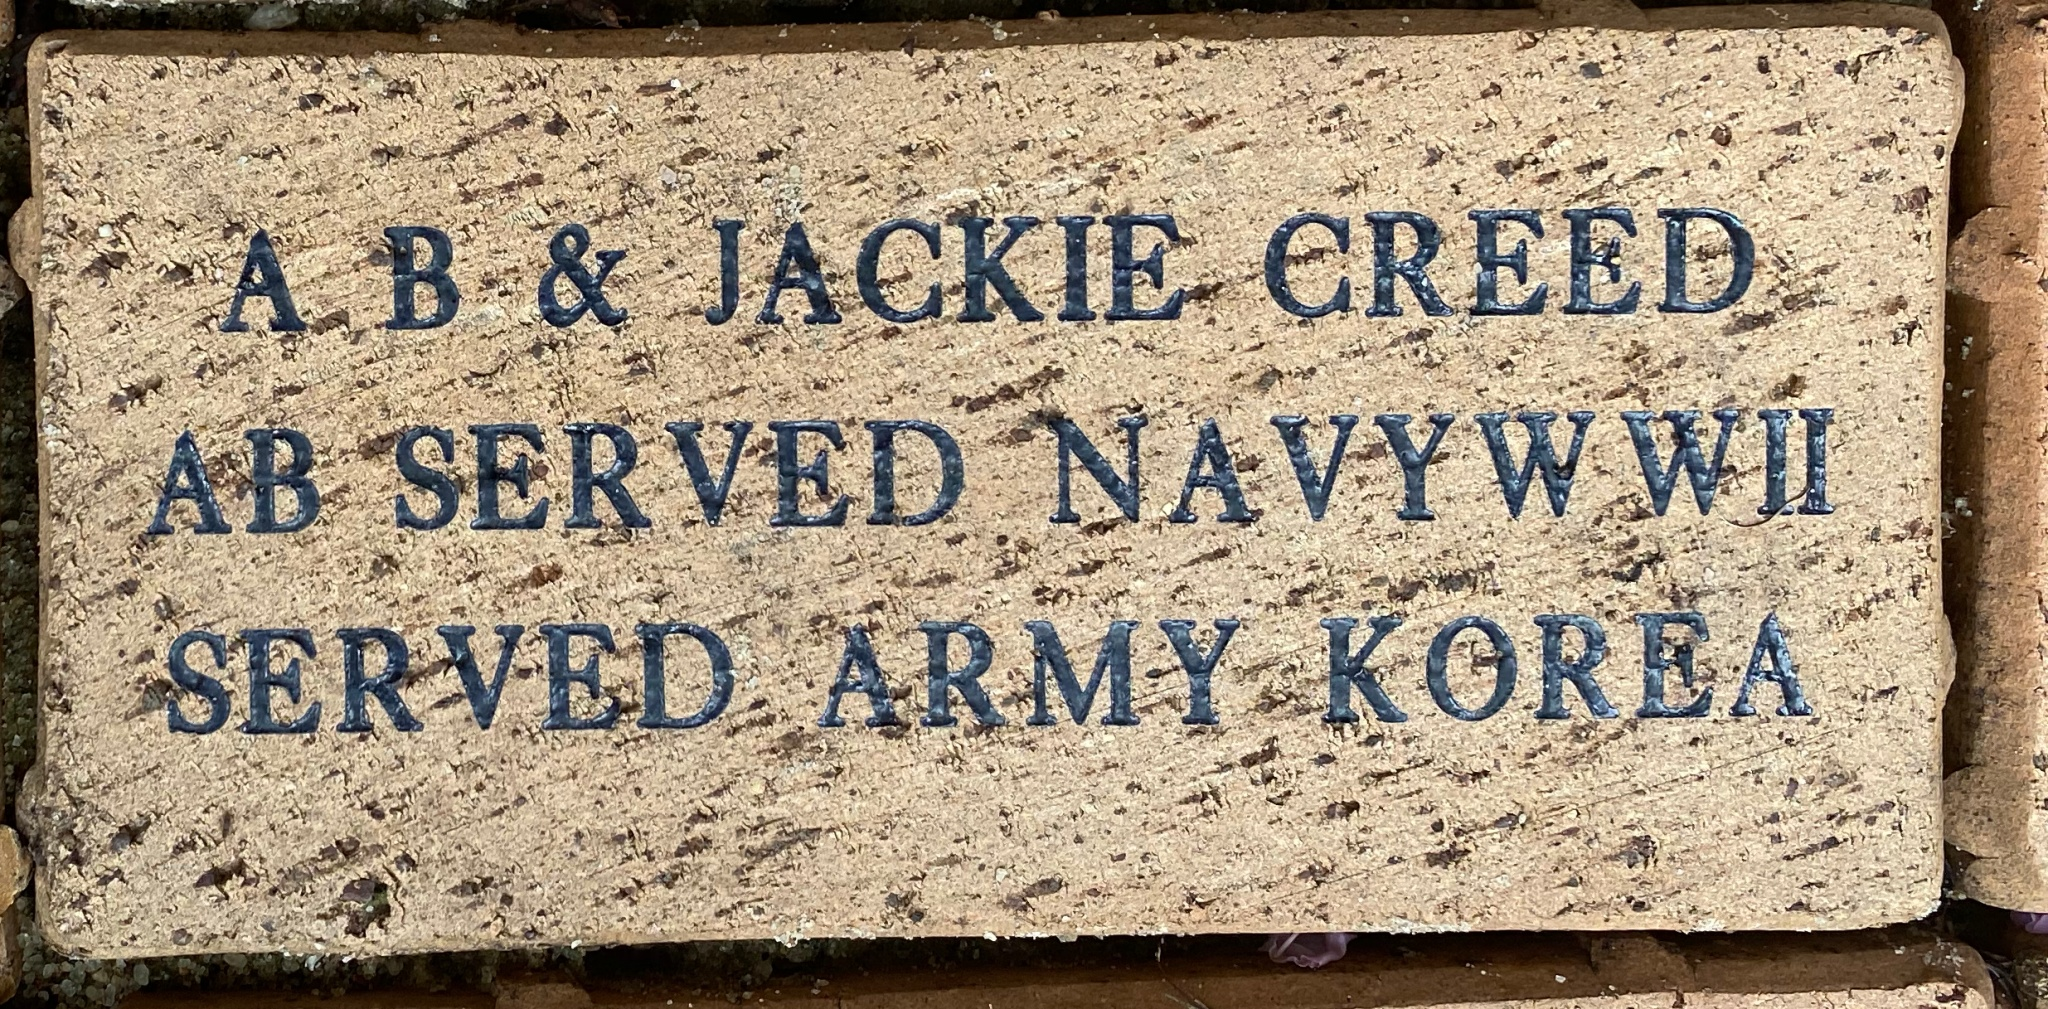 A.B. & JACKIE CREED AB SERVED NAVY WWII SERVED ARMY KOREA